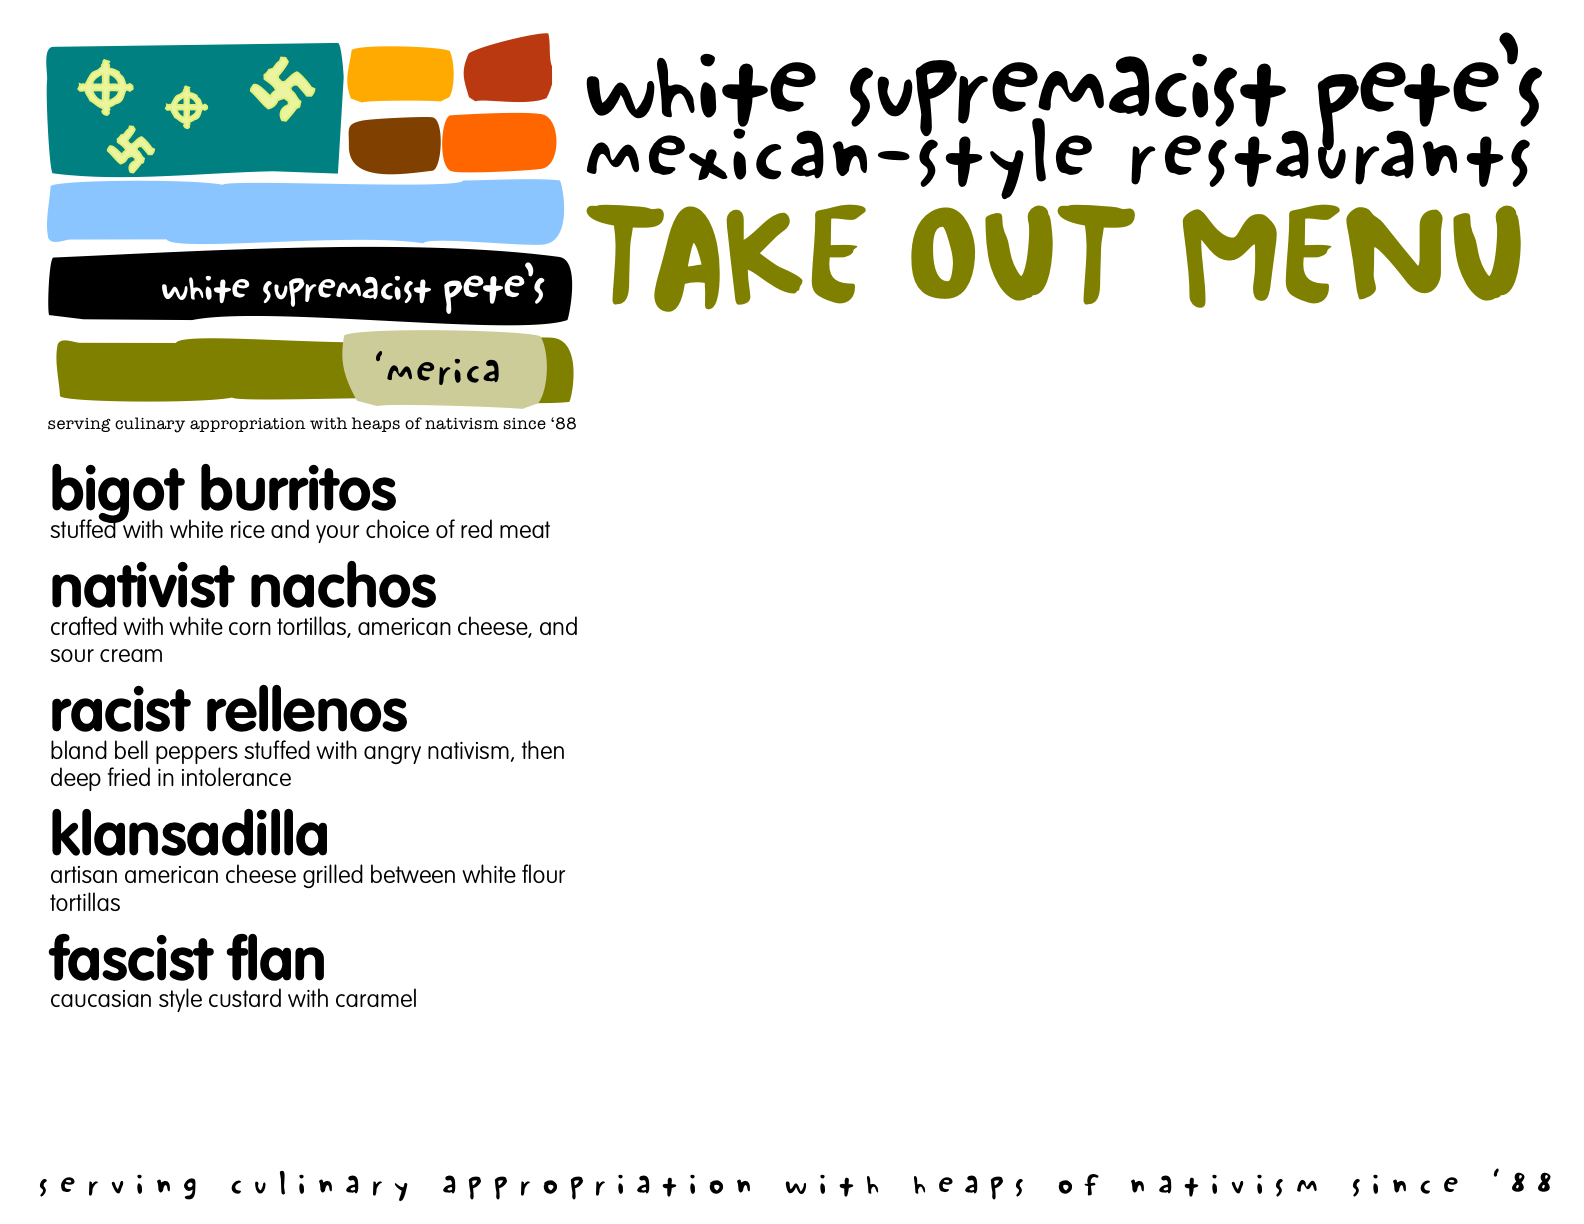 Suggest menu items for racist restaurant owner Pete!